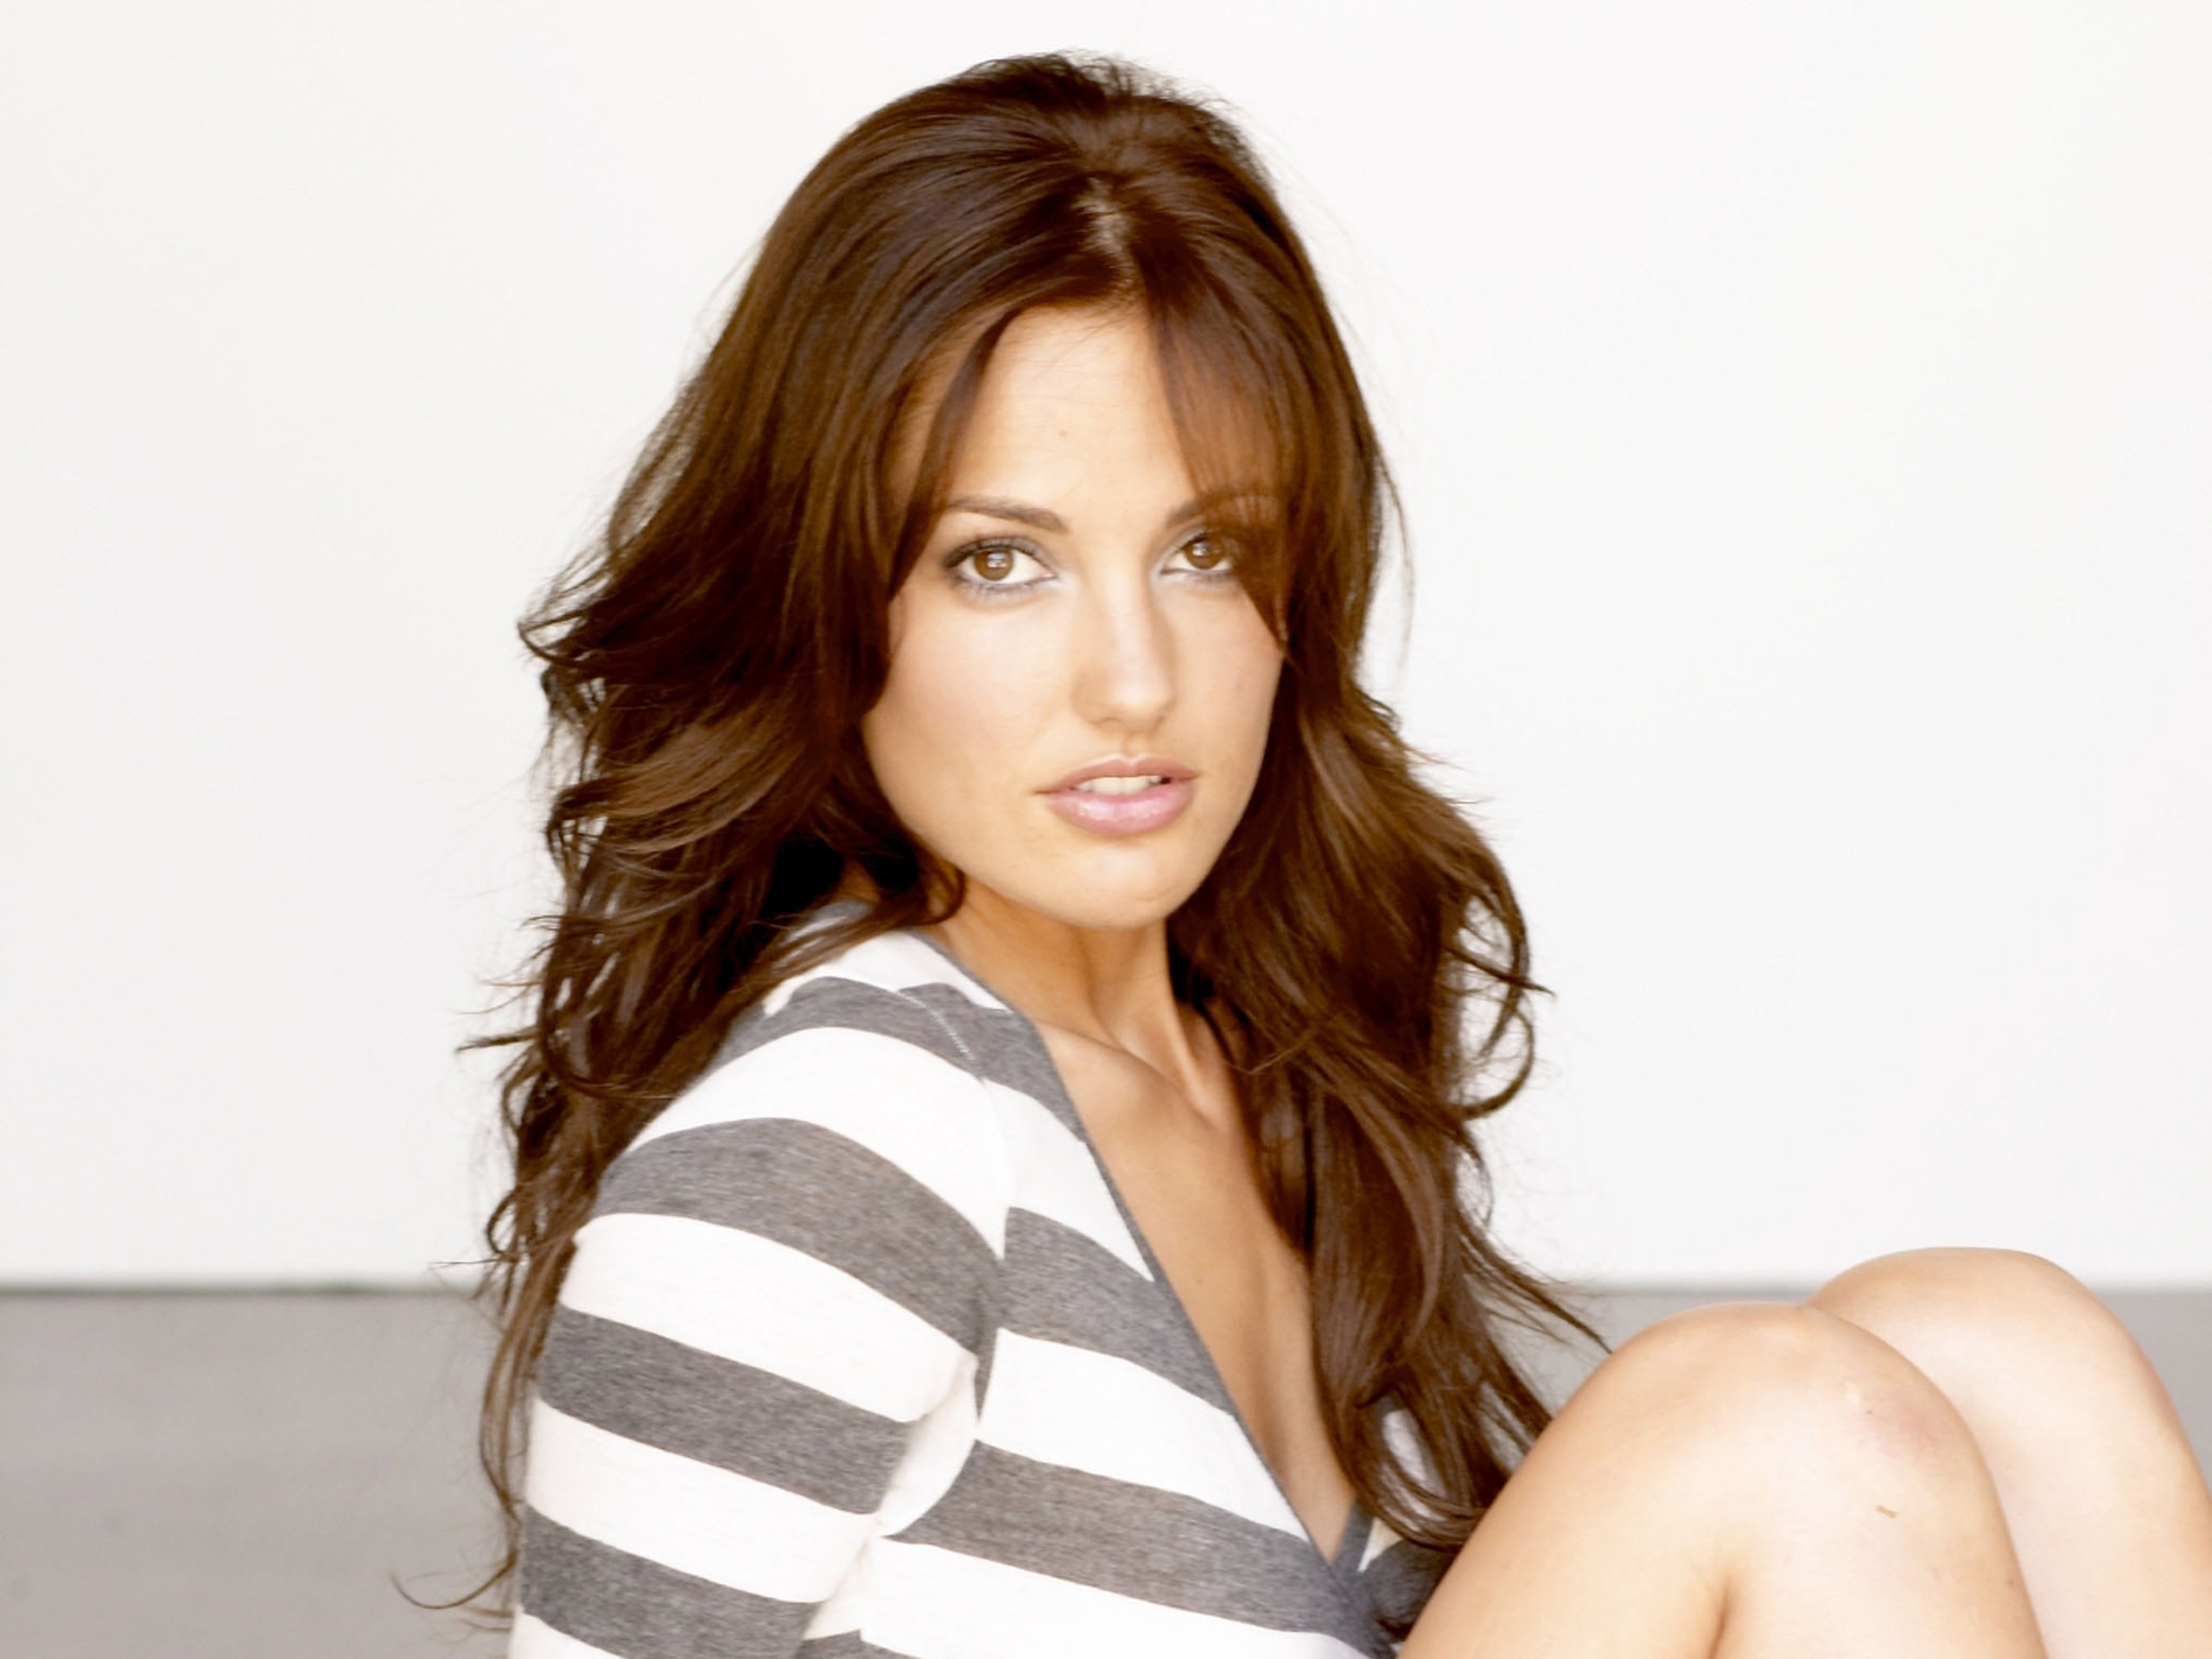 Minka Kelly Wallpapers High Resolution And Quality Download